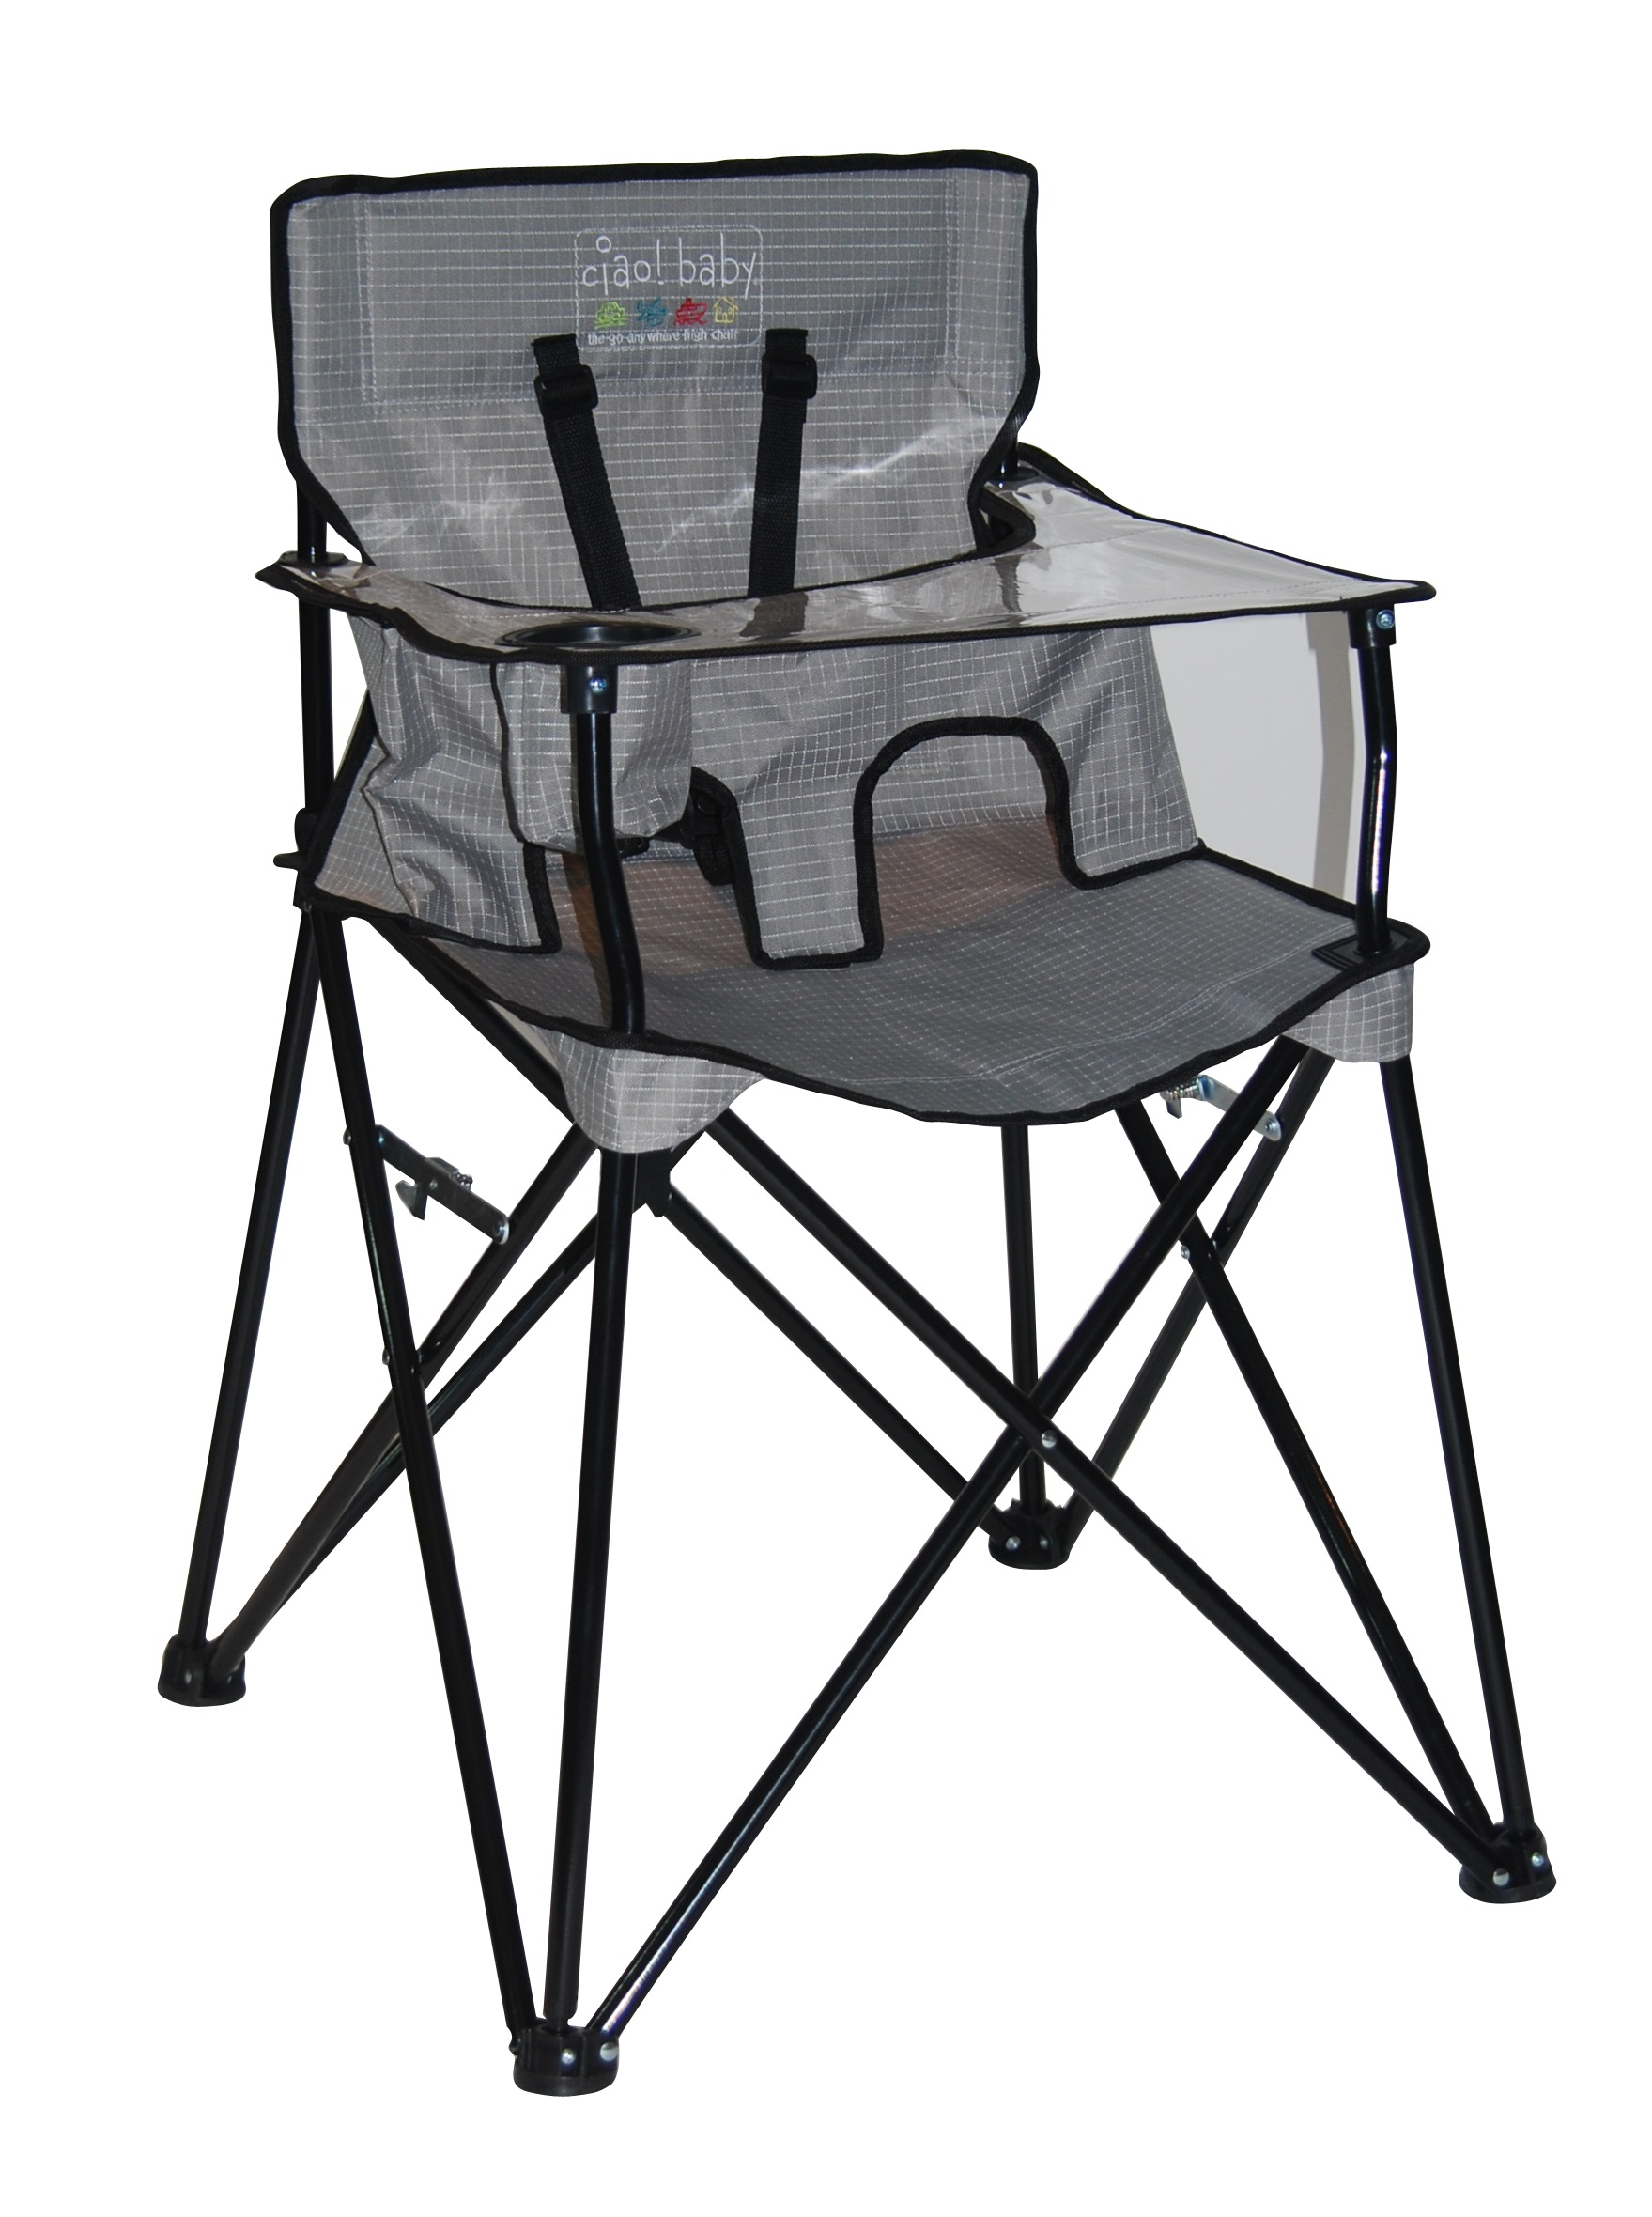 0230366f625 ciao! baby portable high chair